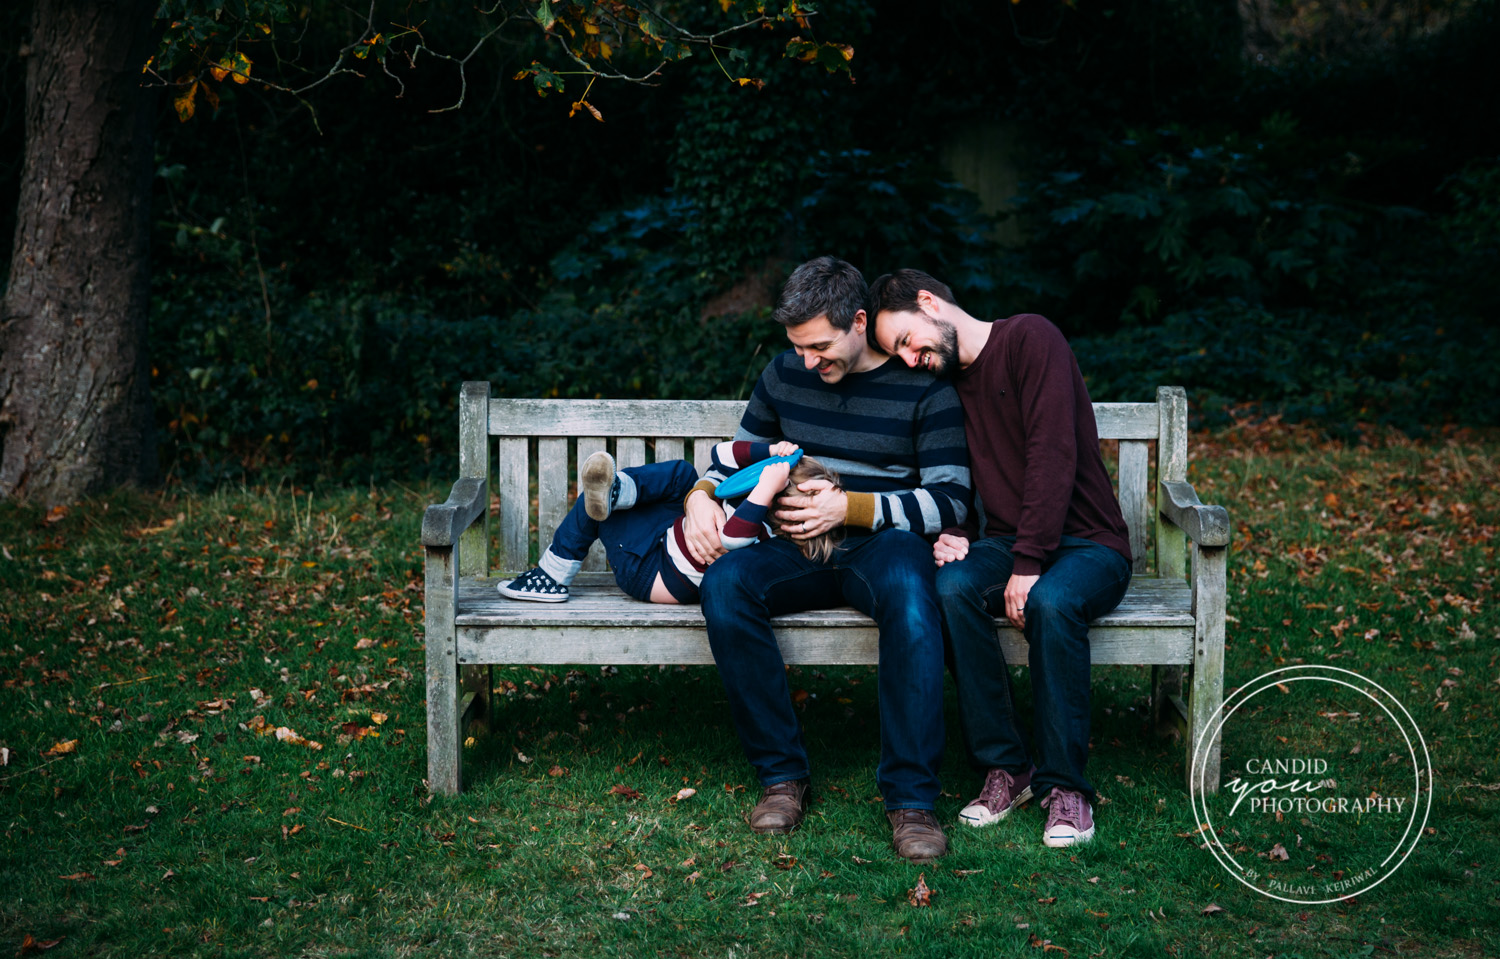 LGBTQ Dads lovingly look towards their son